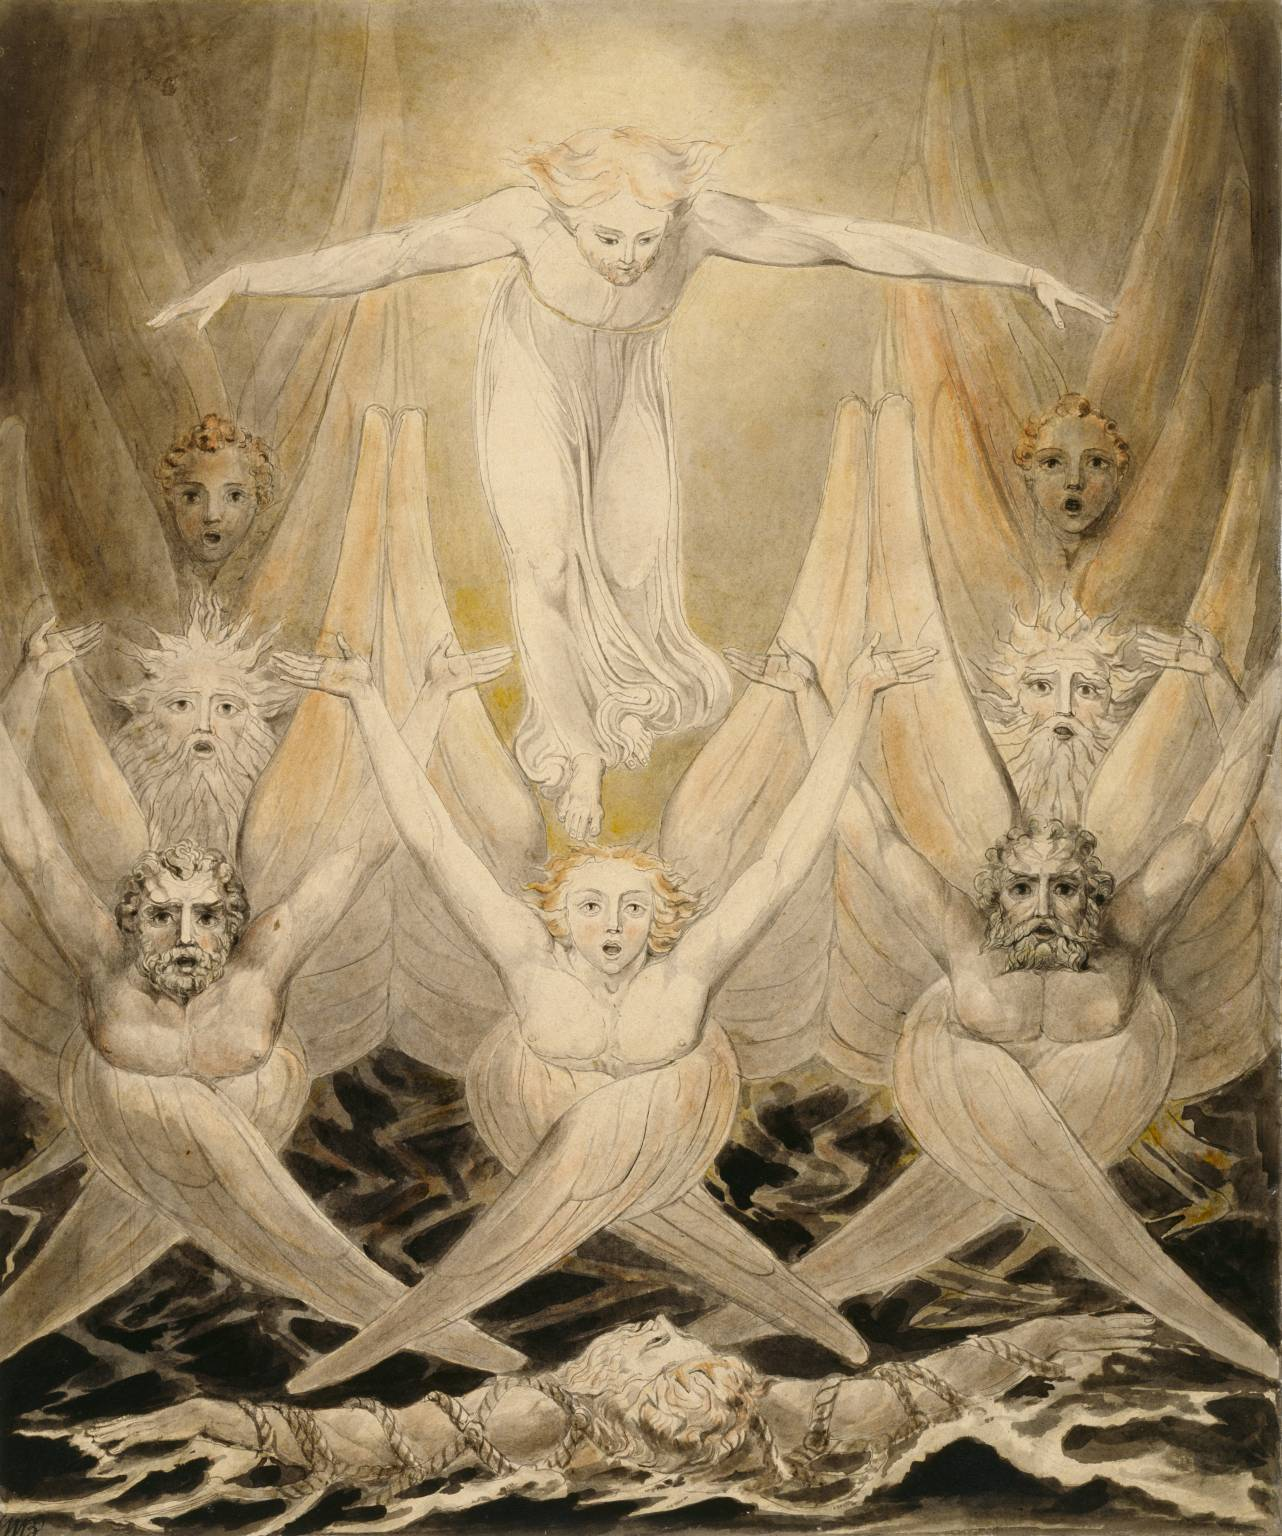 blake and the universal man Blake's myth of the fall of universal man from a state of wholeness is an amalgam of kabbalistic symbolism william blake & the jews: the bibliography.